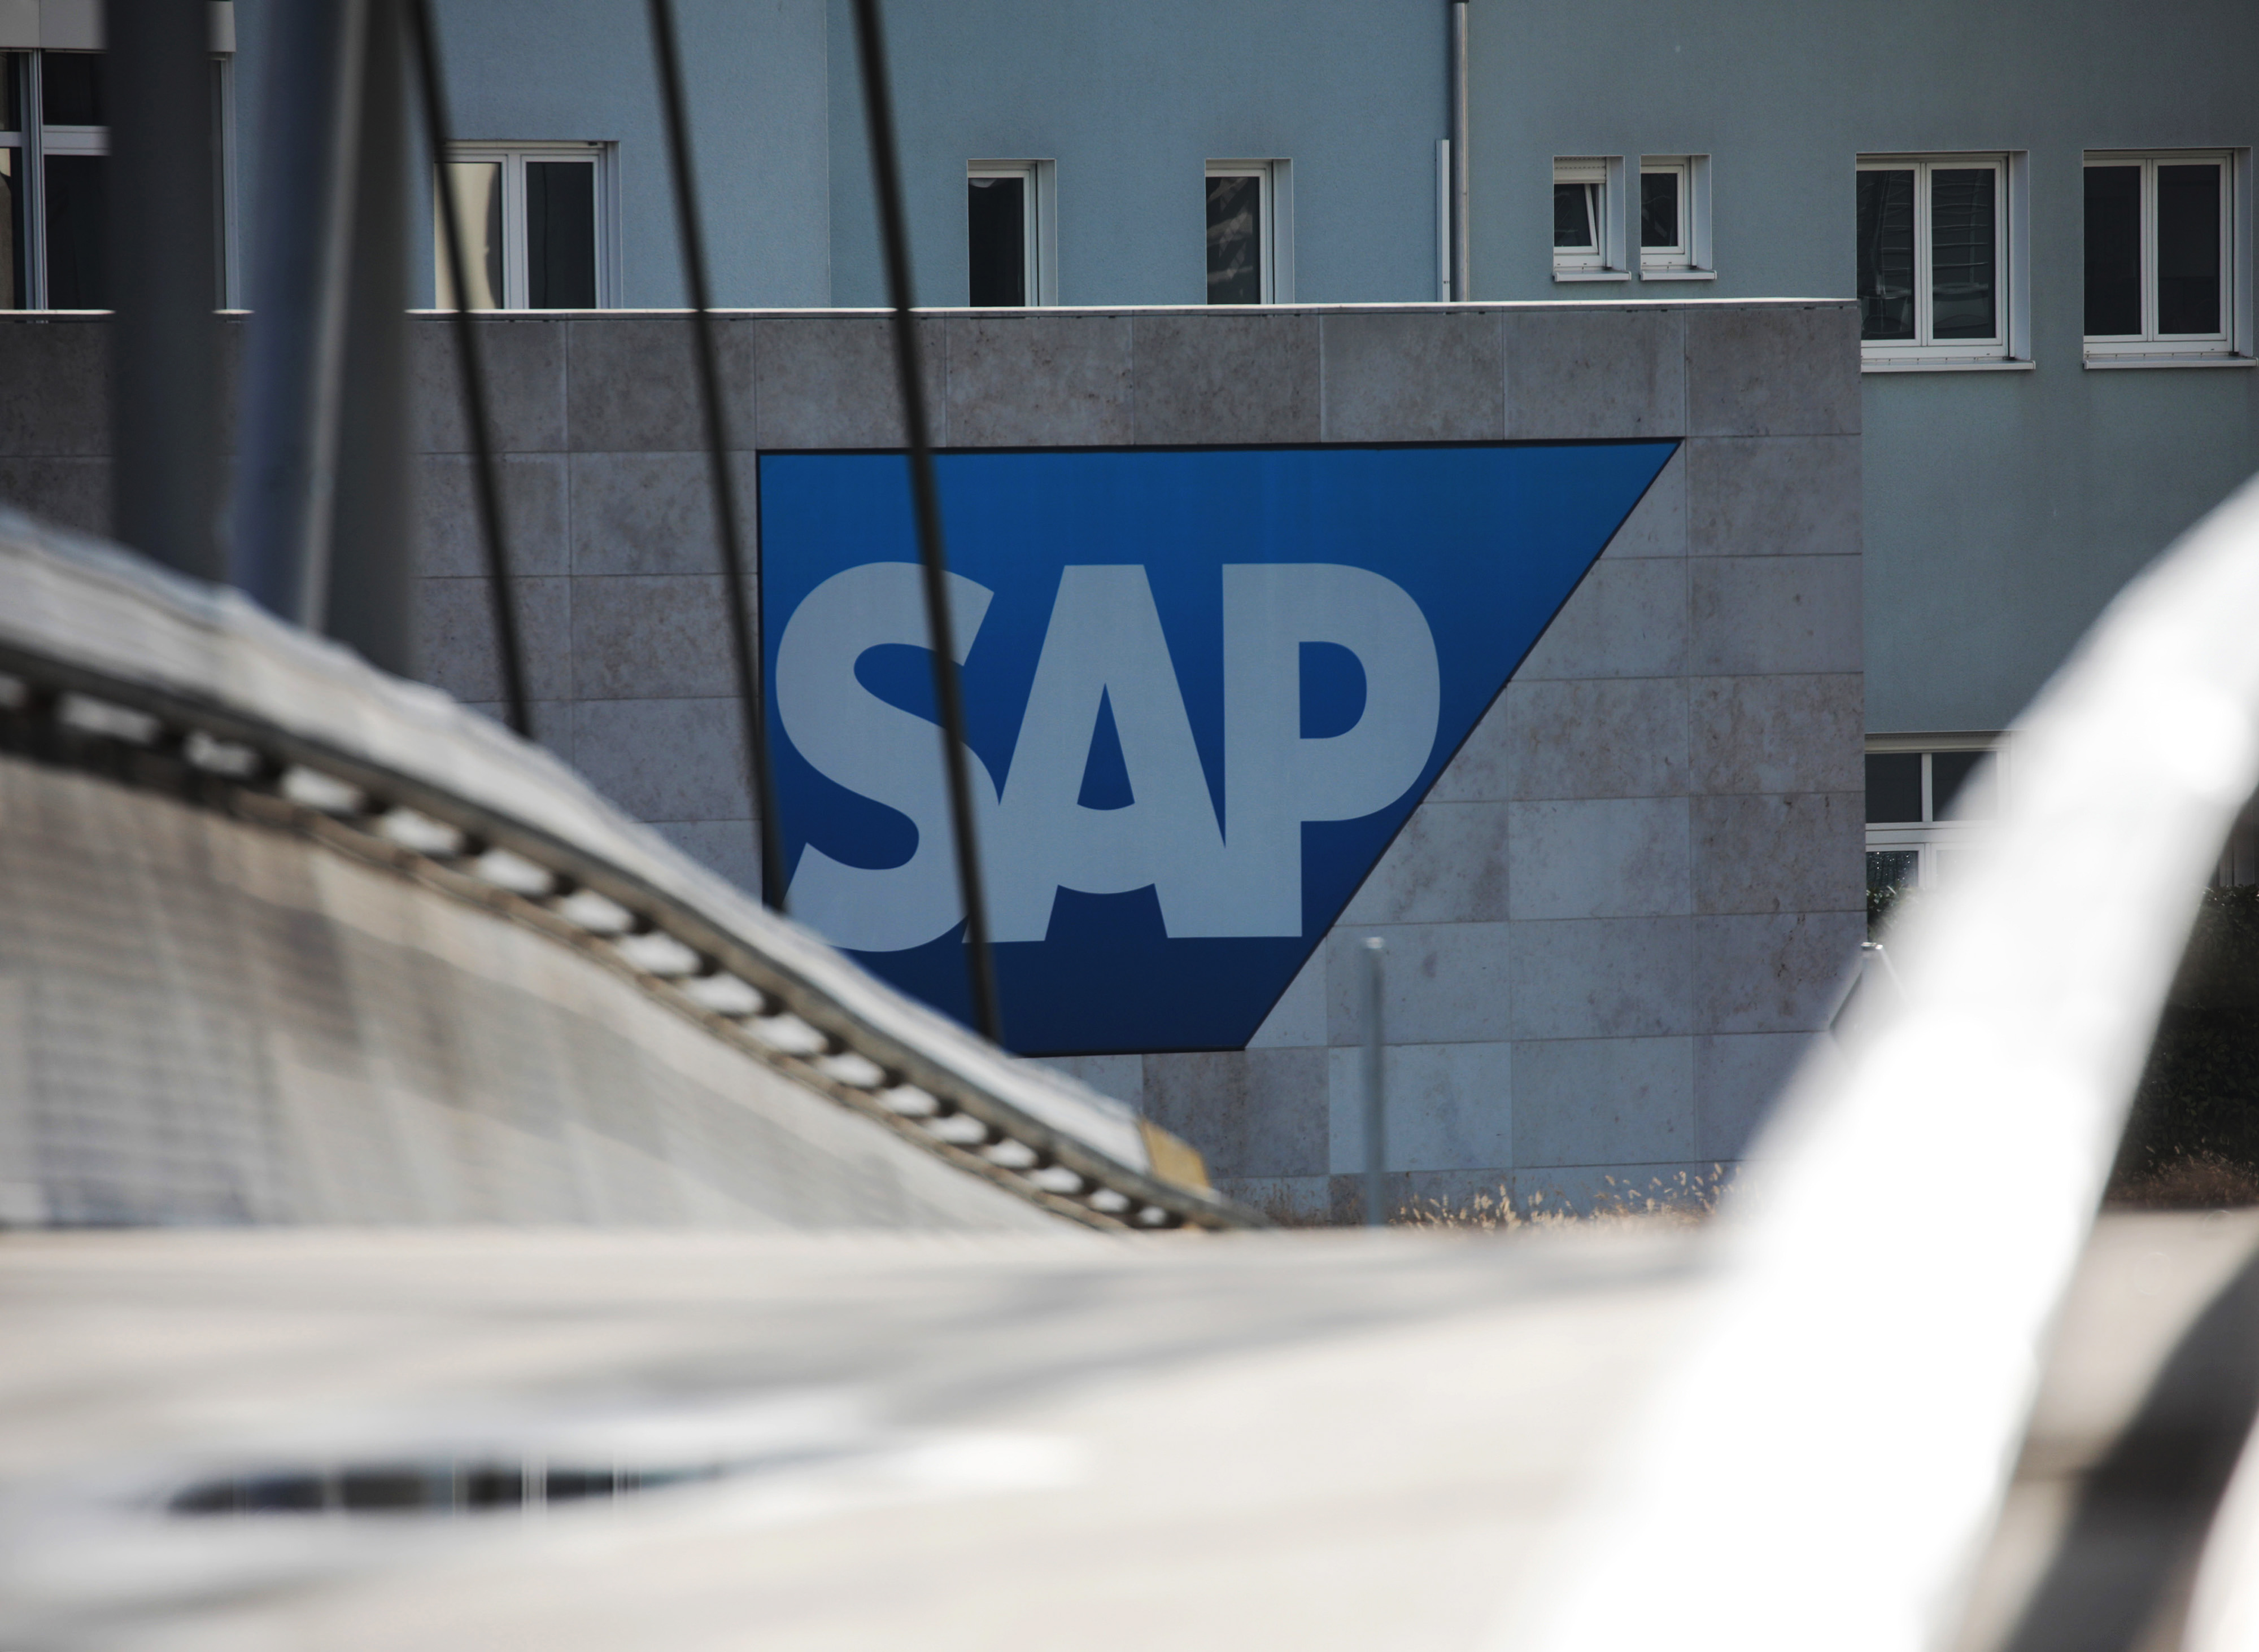 bloomberg.com - Stefan Nicola - SAP Increases Outlook on Cost Cuts and Growth in Cloud Computing